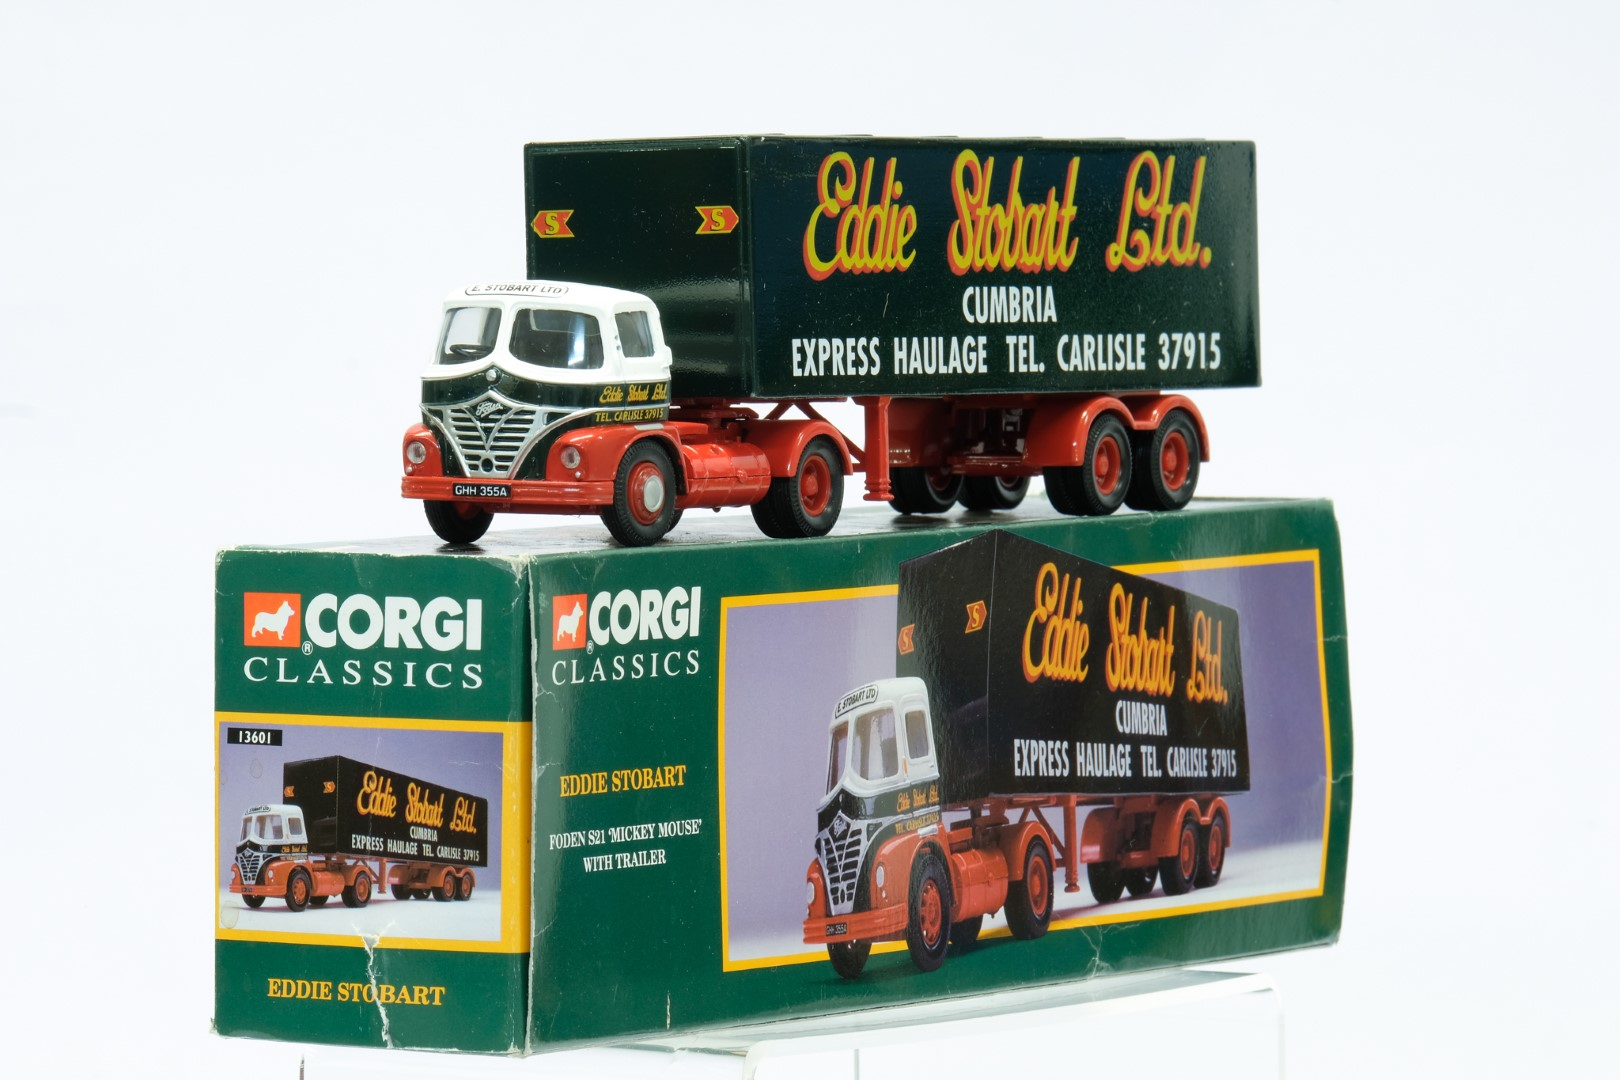 Corgi Foden S21 'Mickey Mouse' With Trailer - Eddie Stobart - Image 2 of 3